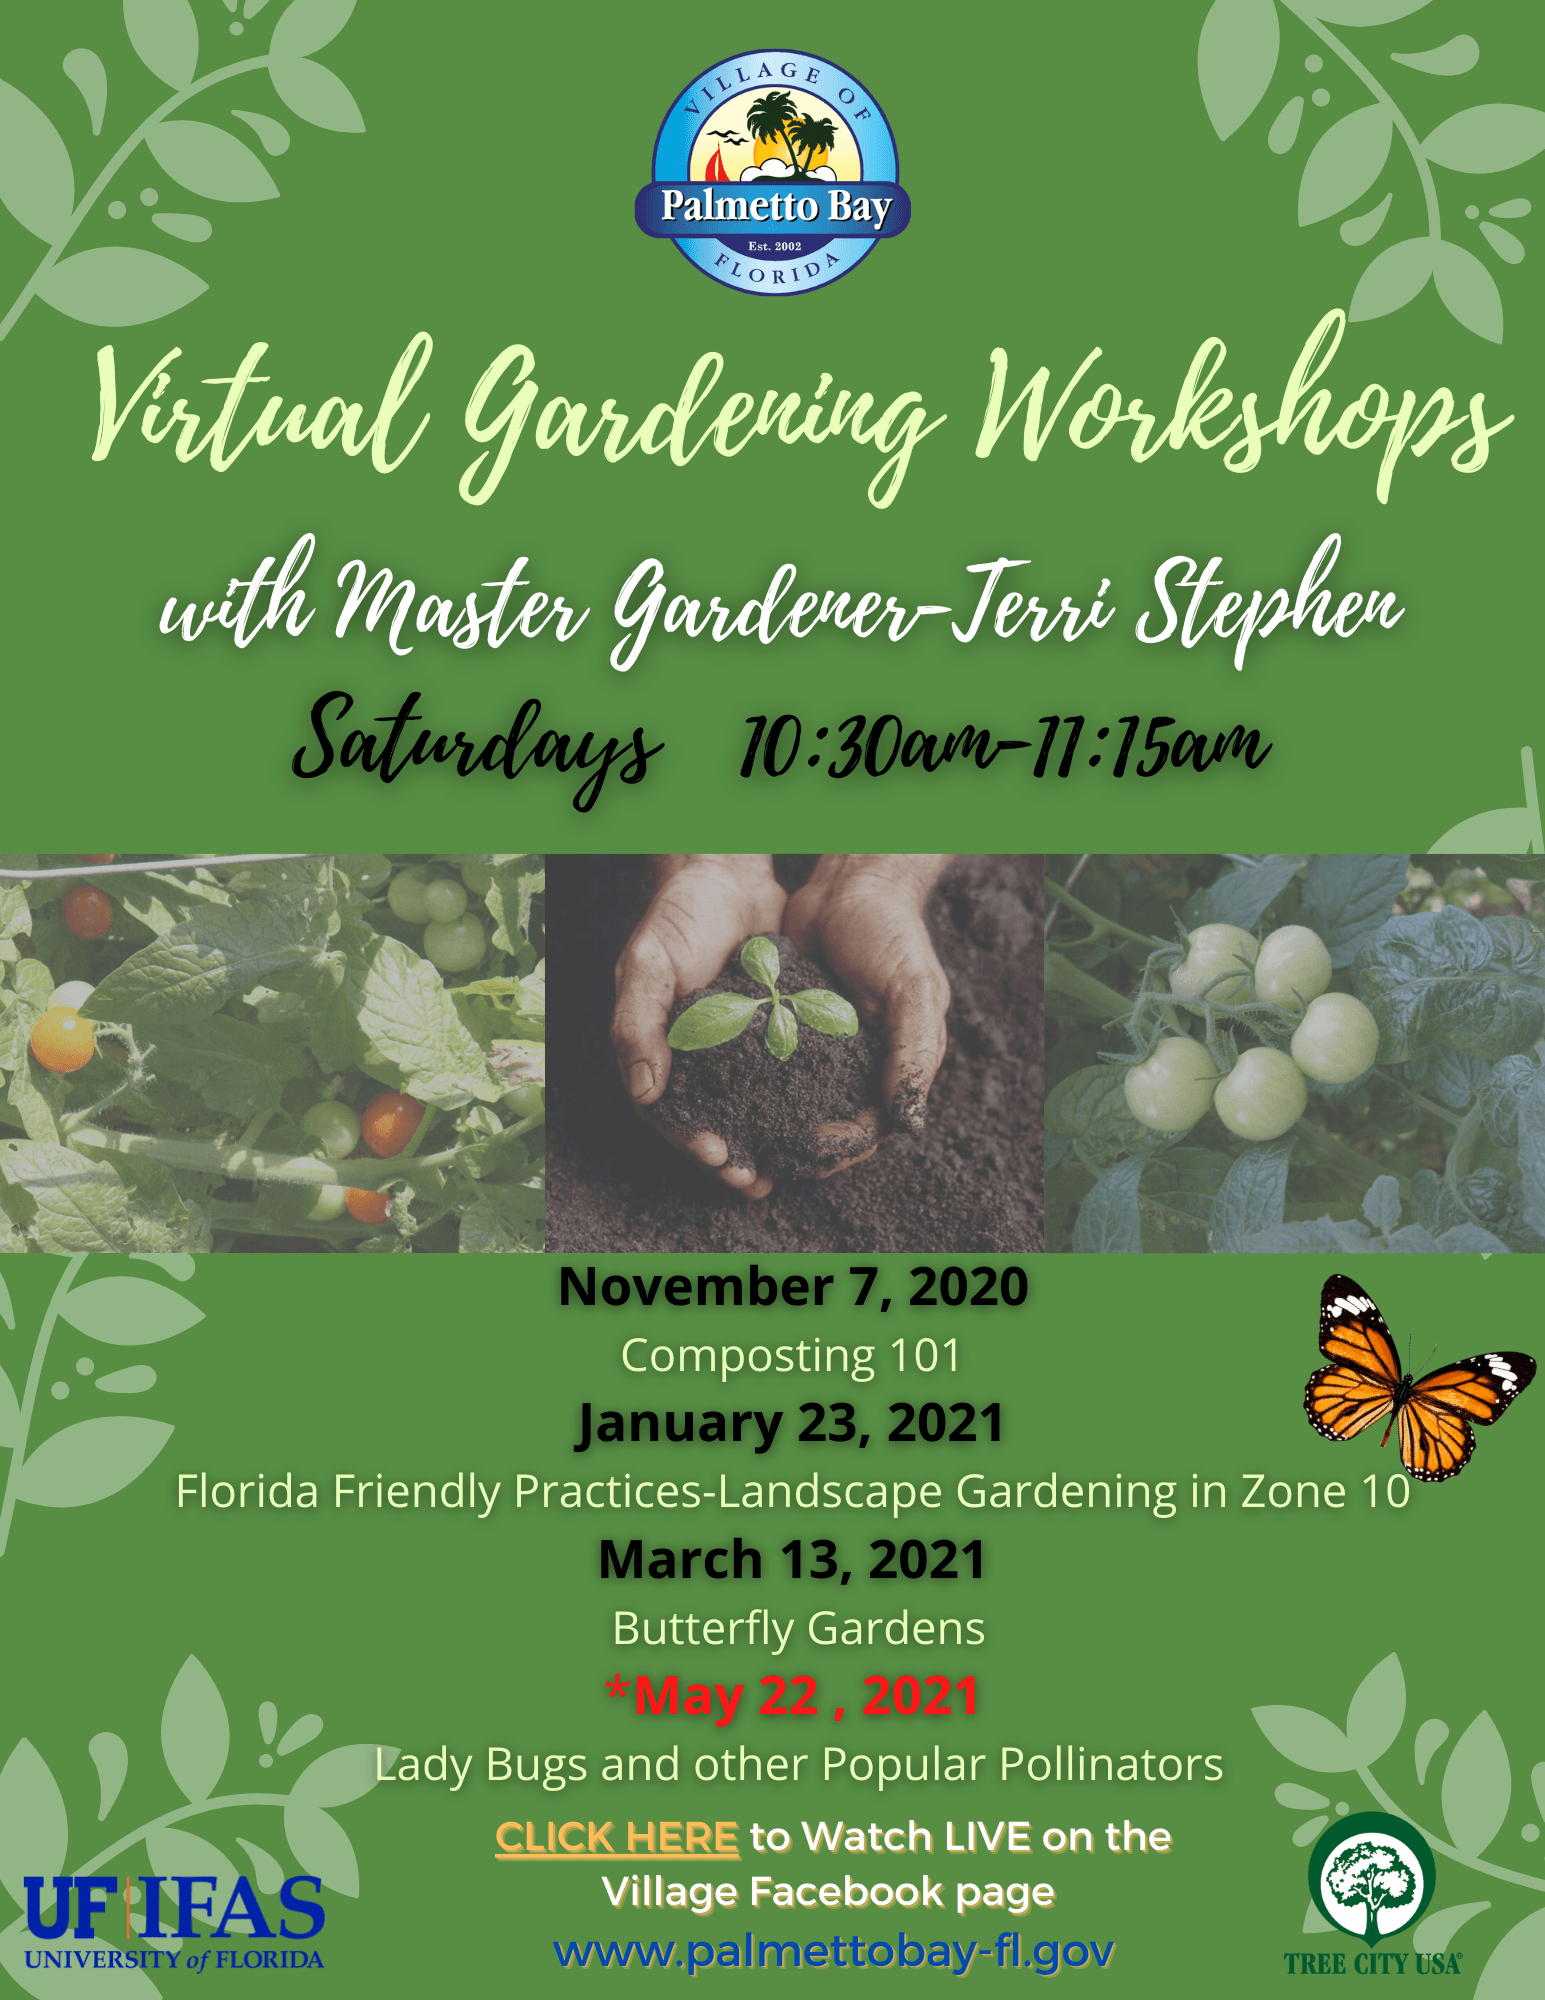 Virtual Gardening Workshops 2020-2021 Flyer